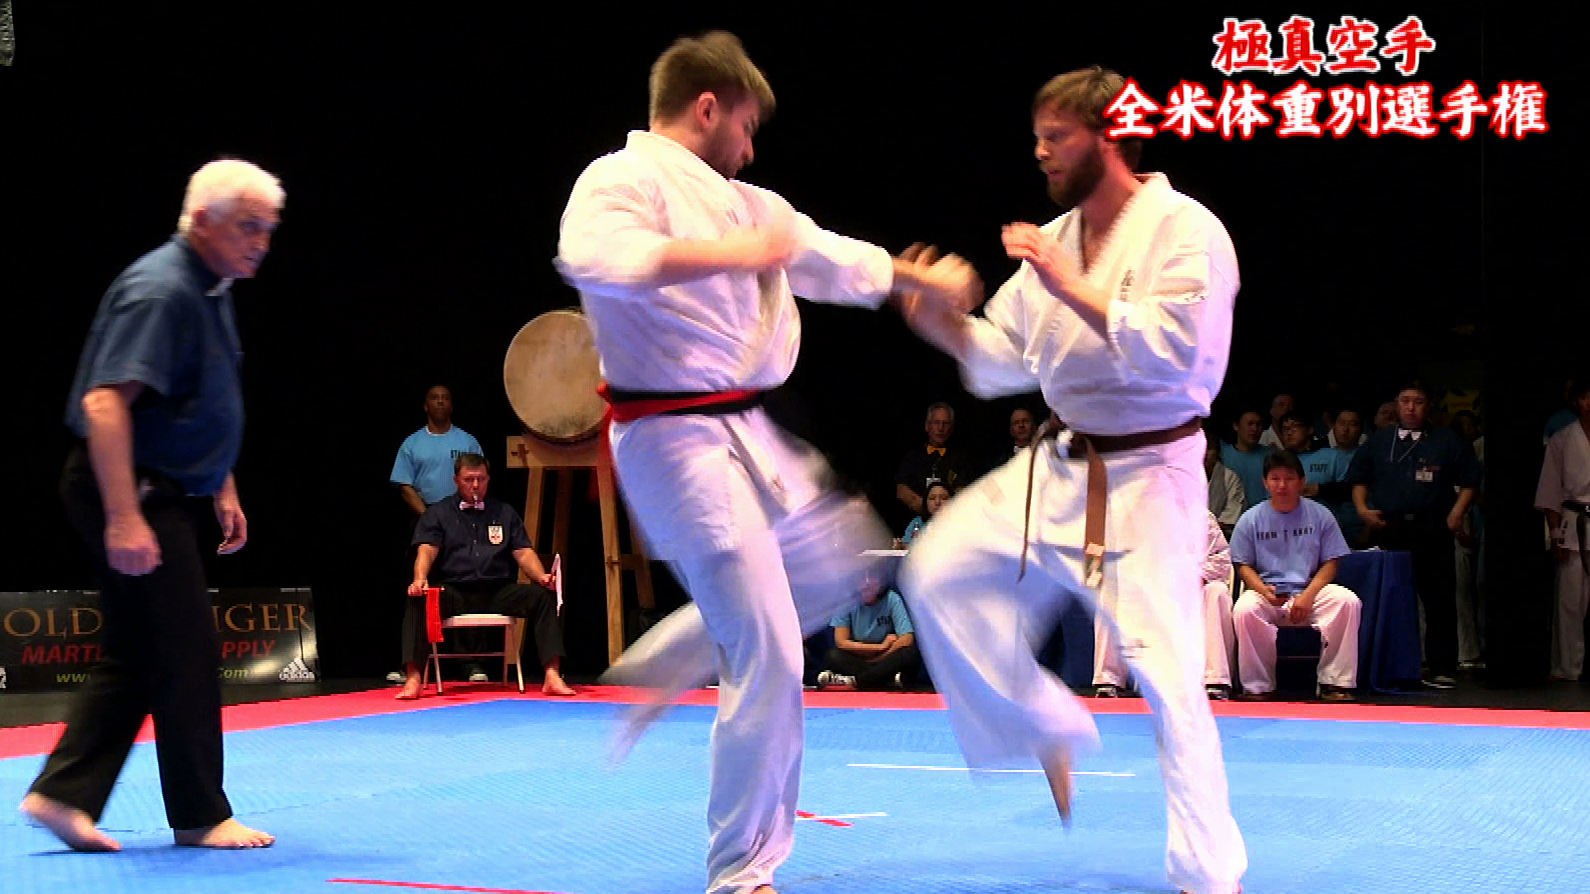 極真空手 第11回全米体重別選手権 / The 11th U.S. Weight Category Karate Championships